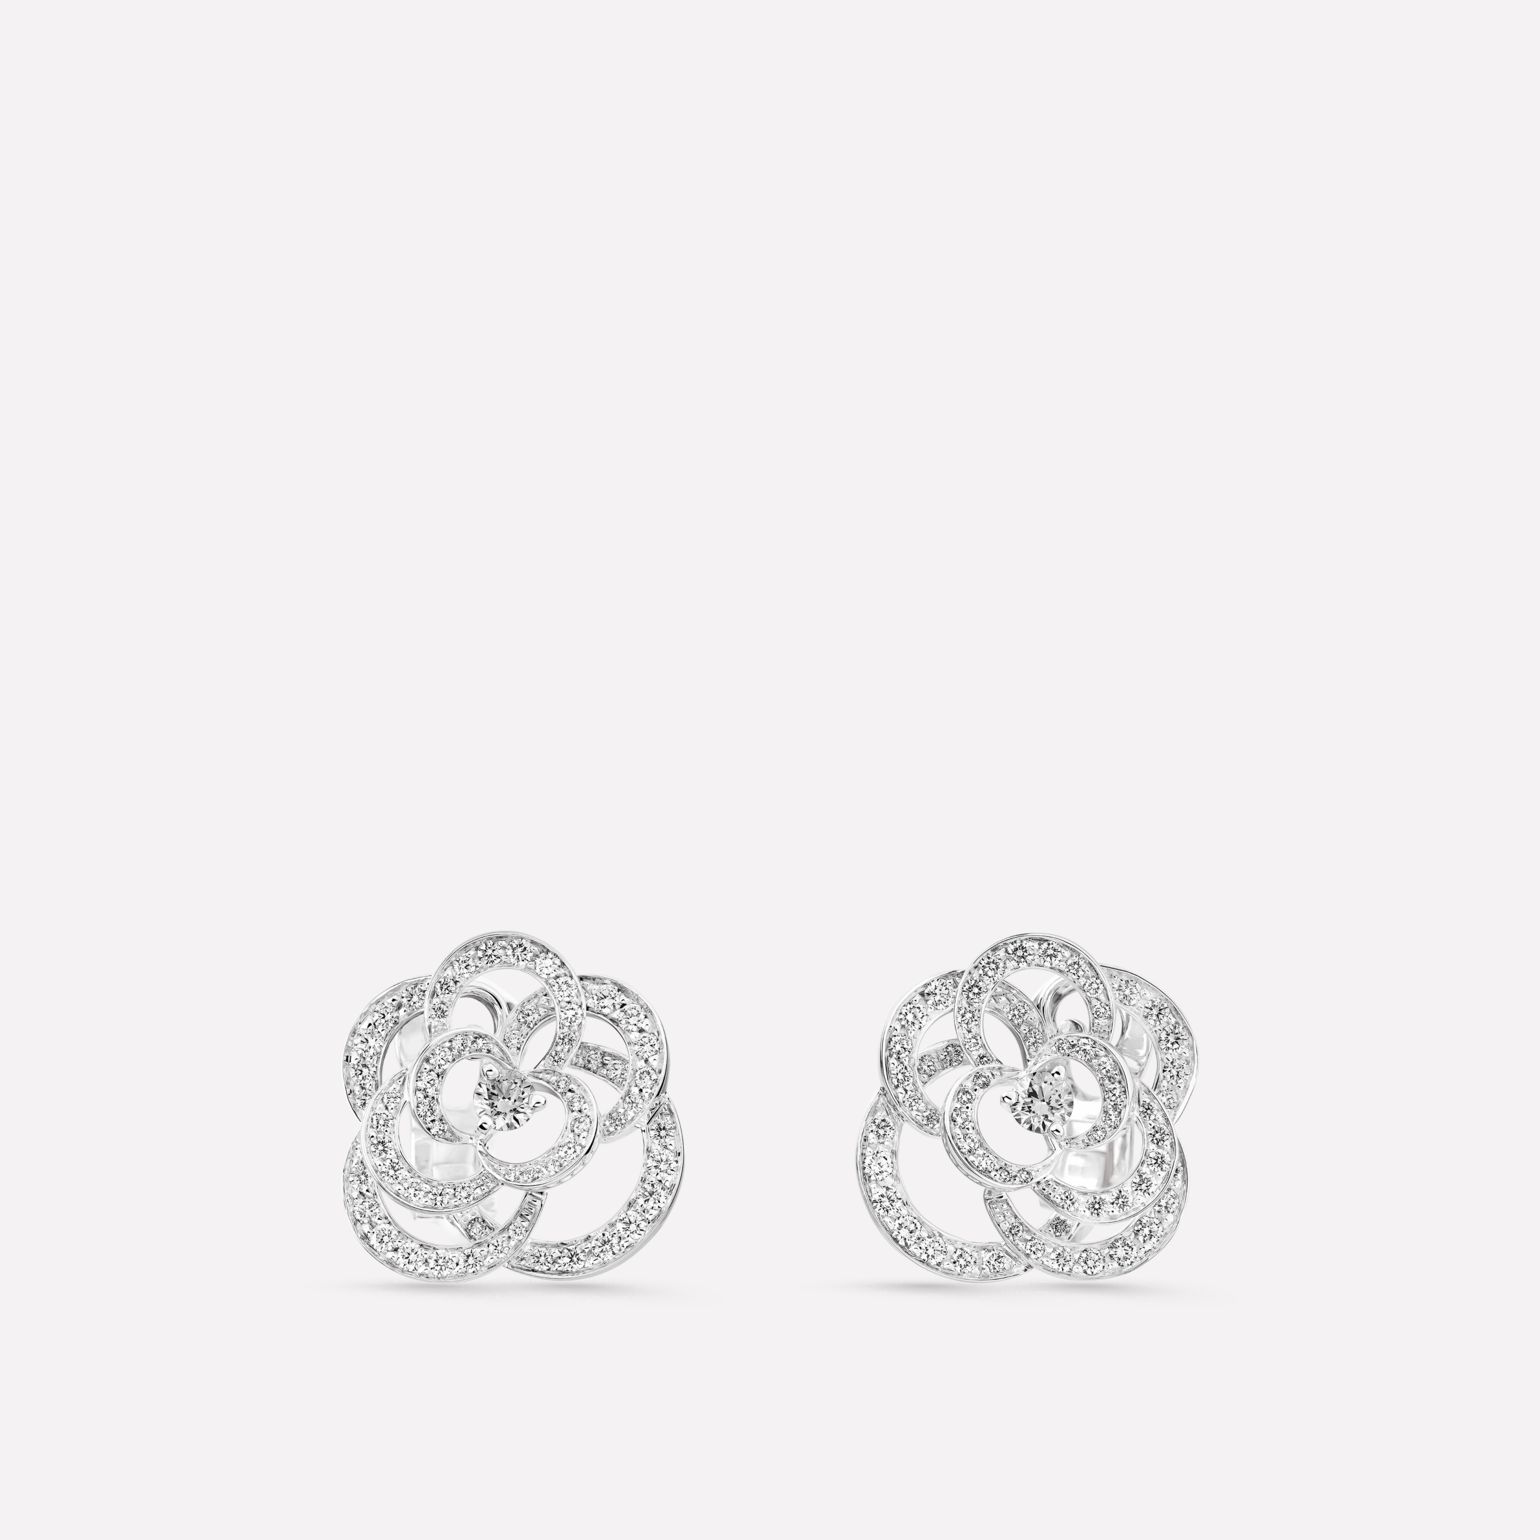 Camélia earrings Fil de Camélia earrings in 18K white gold and diamonds with one center diamond